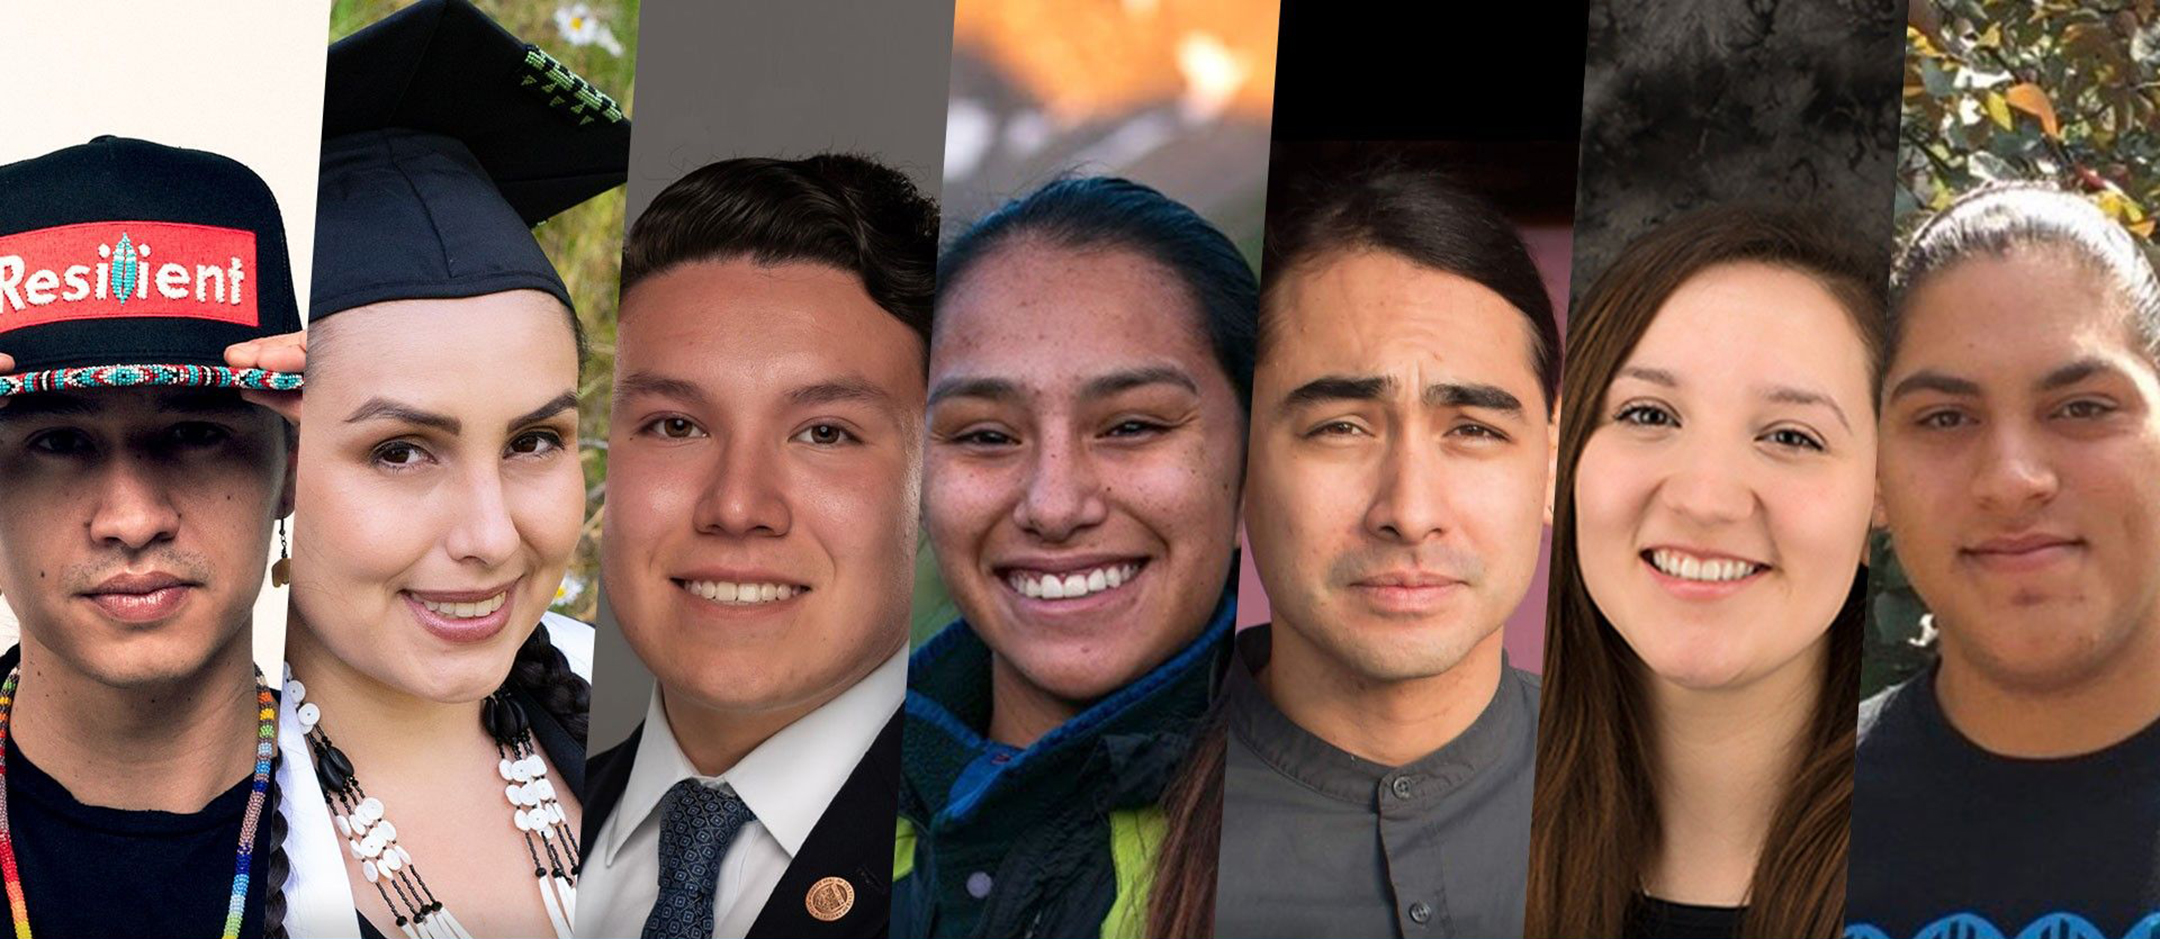 Grid of portraits of seven young native Americans